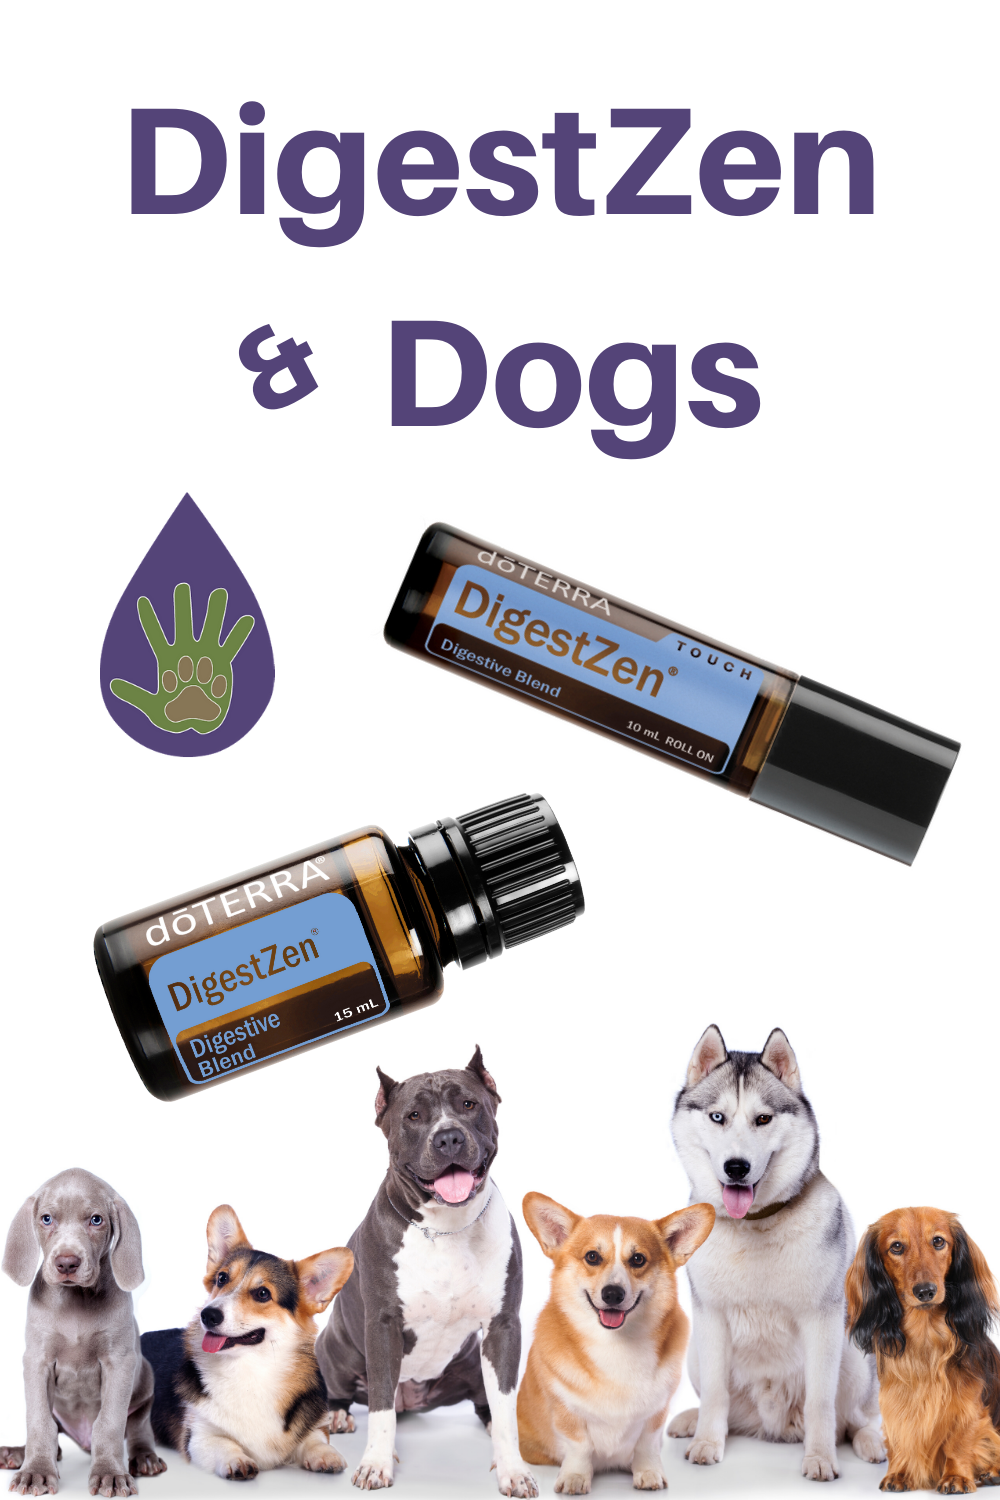 How to use DigestZen Essential Oil with dogs